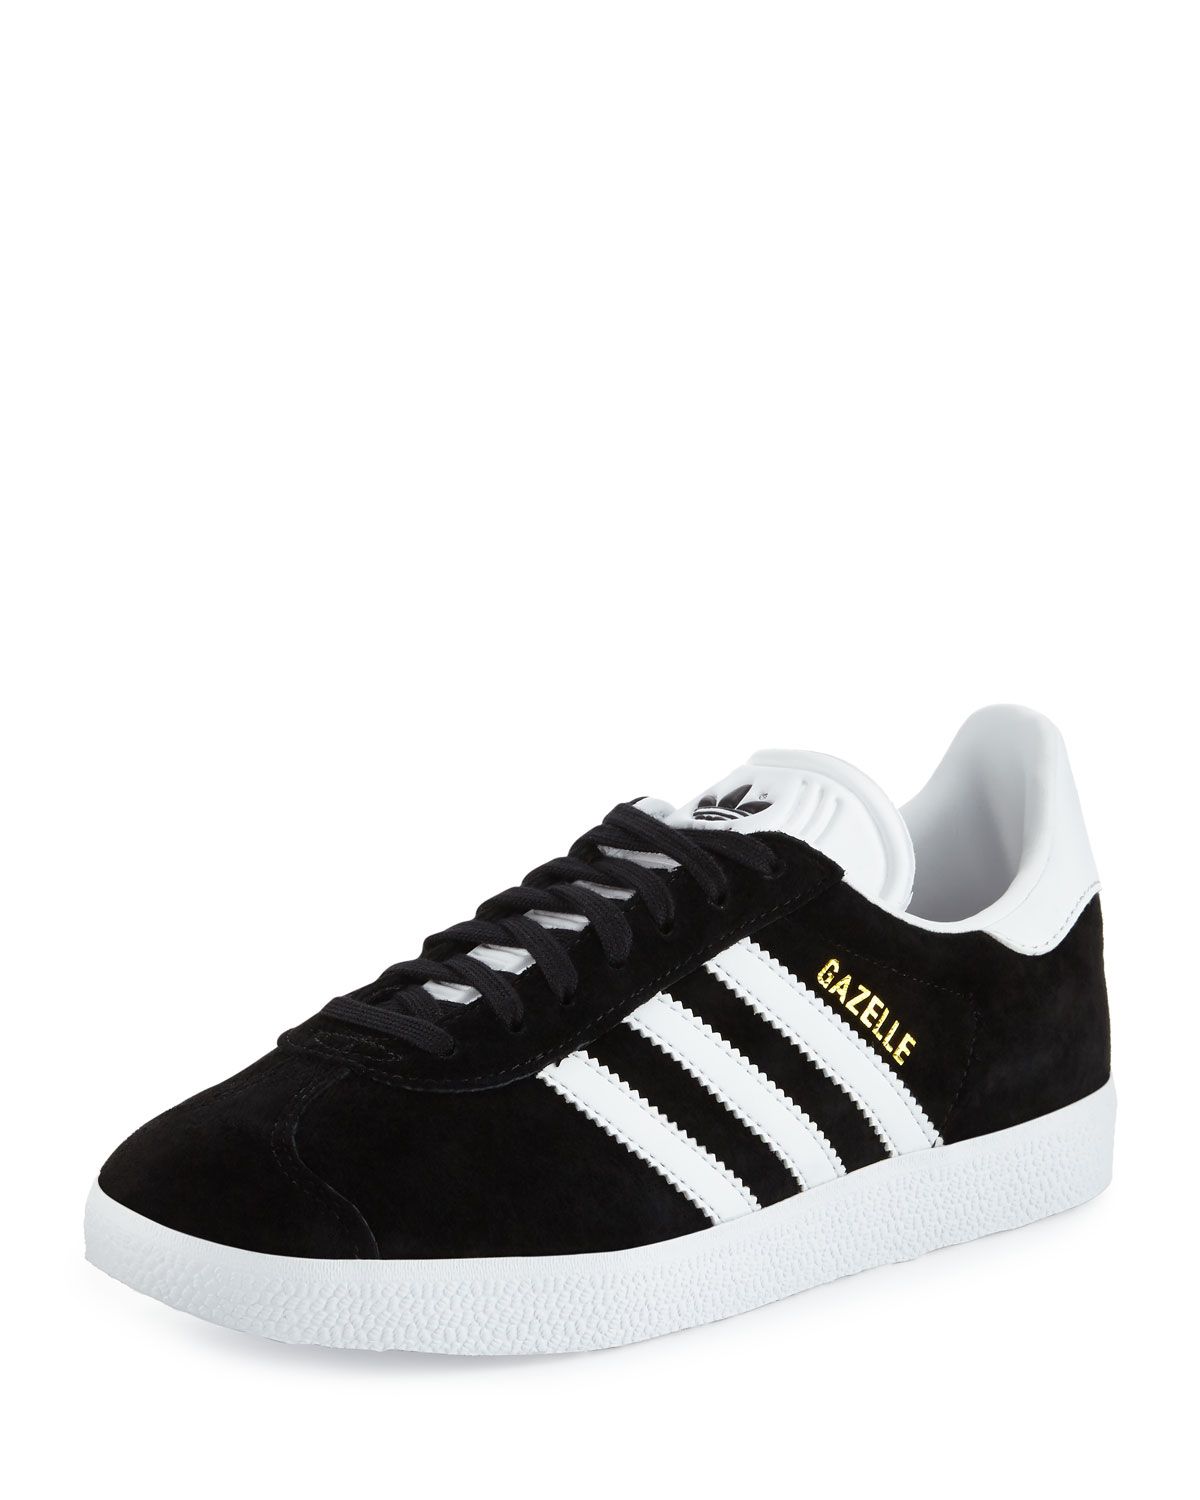 huge selection of 250ec 65285 Adidas Gazelle Original Suede Sneakers, Black White